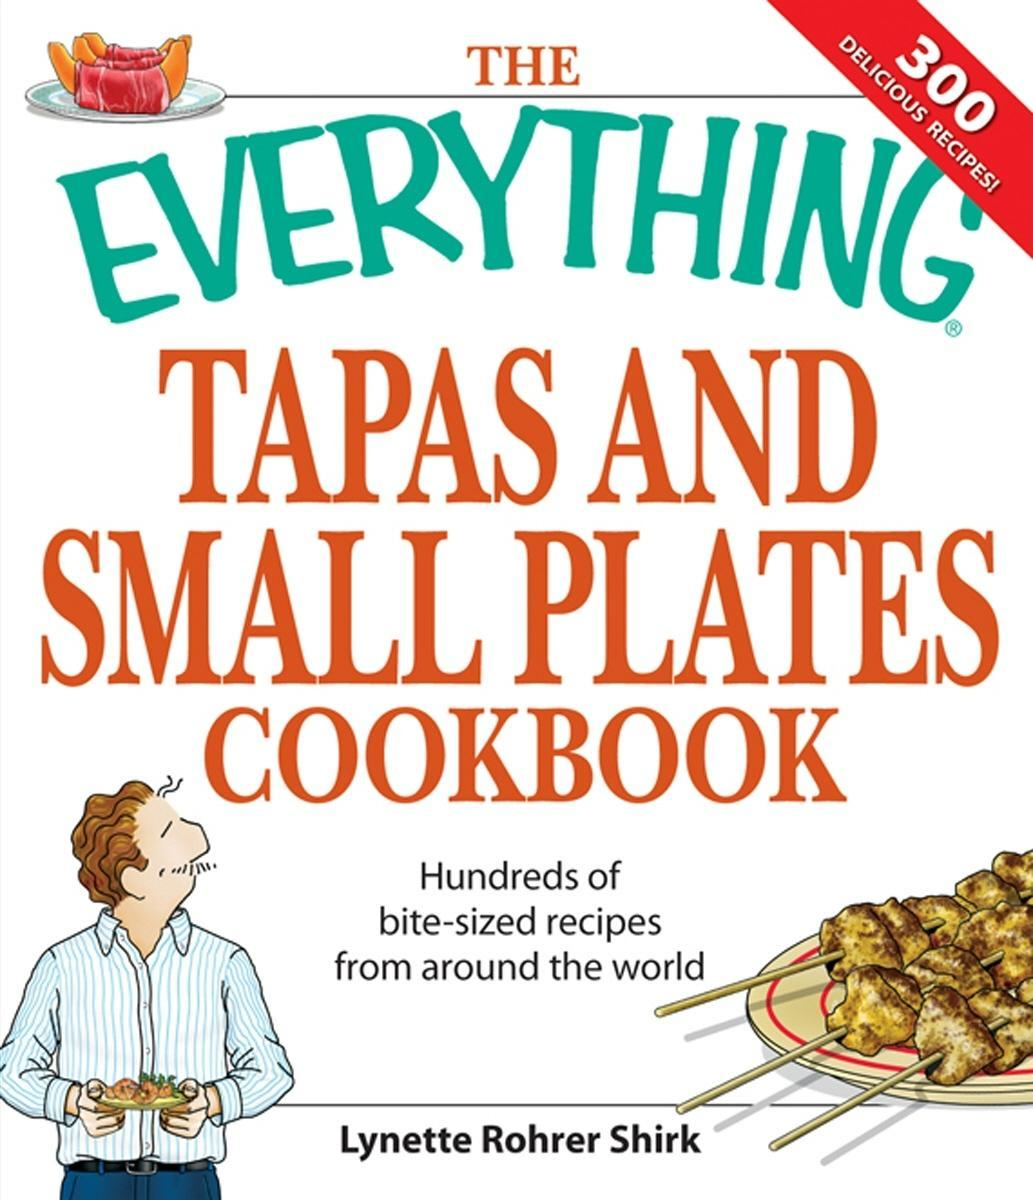 Everything Tapas and Small Plates Cookbook: Hundreds of bite-sized recipes from around the world EB9781605502465